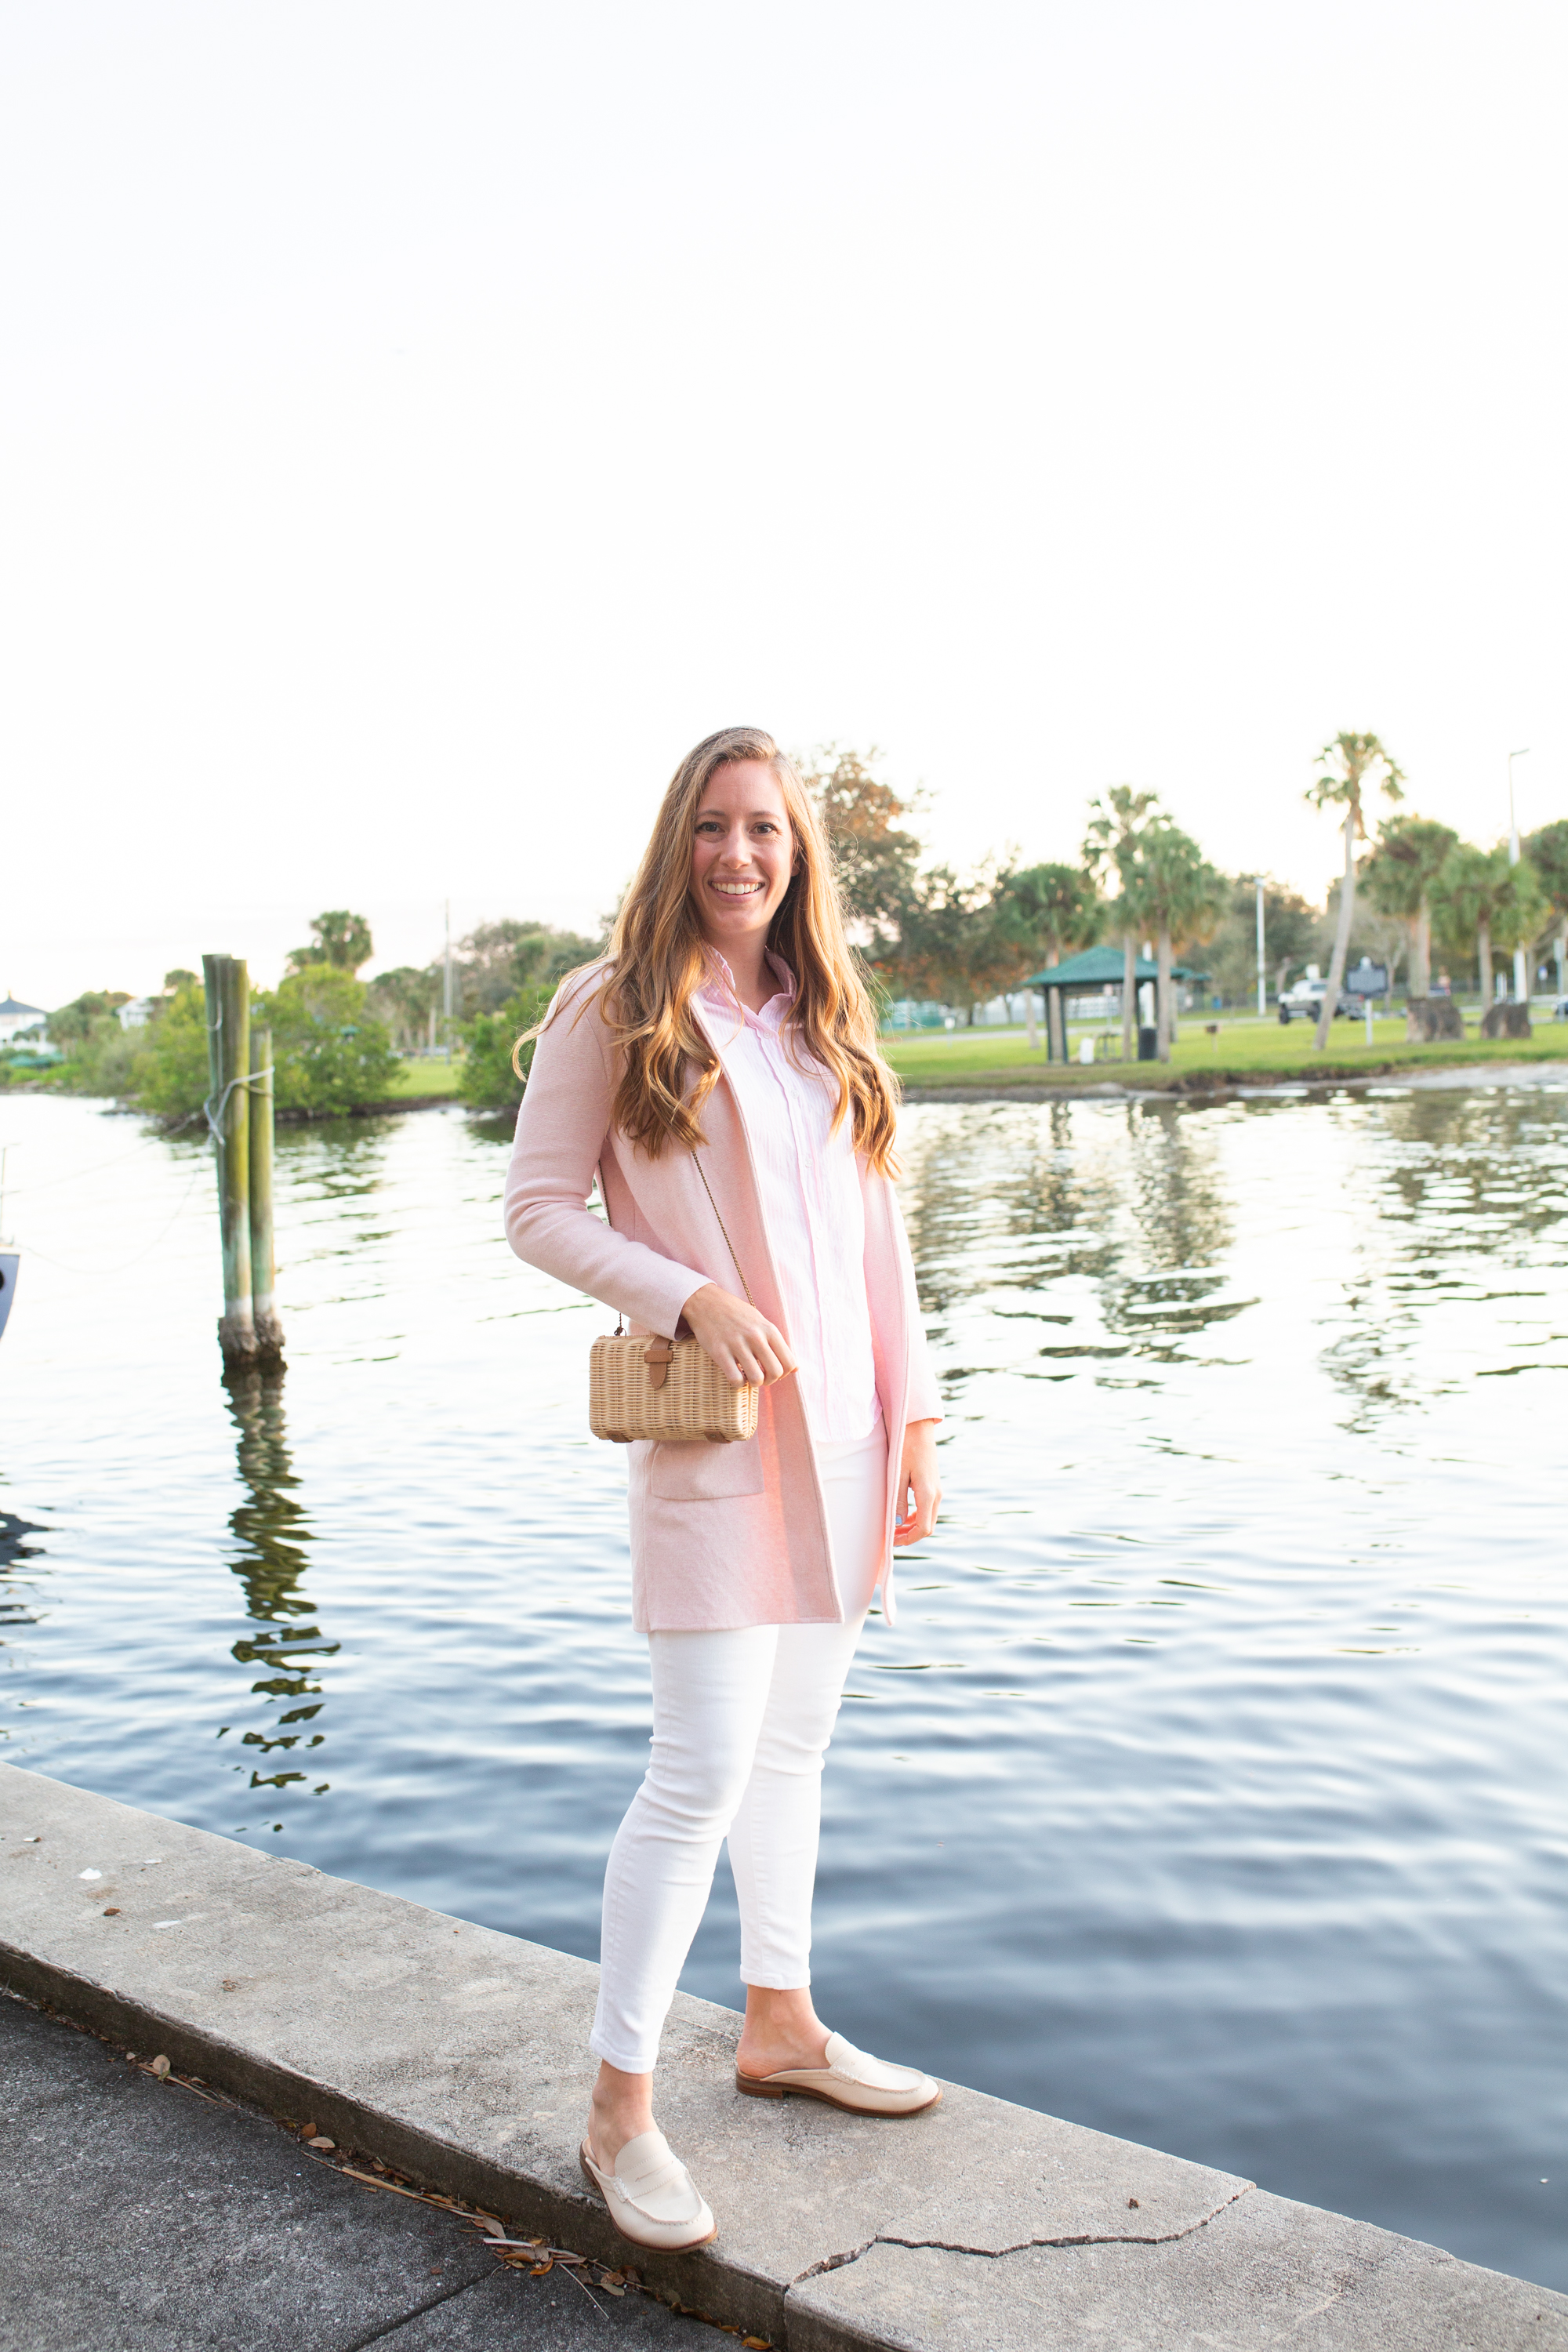 How to Style a Sweater Blazer / White Jeans / Mules / Classic Outfit Inspiration / Winter Outfit Idea / T-Shirt with Blazer Outfit - Sunshine Style, A Florida Based Fashion and LIfeStyle Blog by Katie